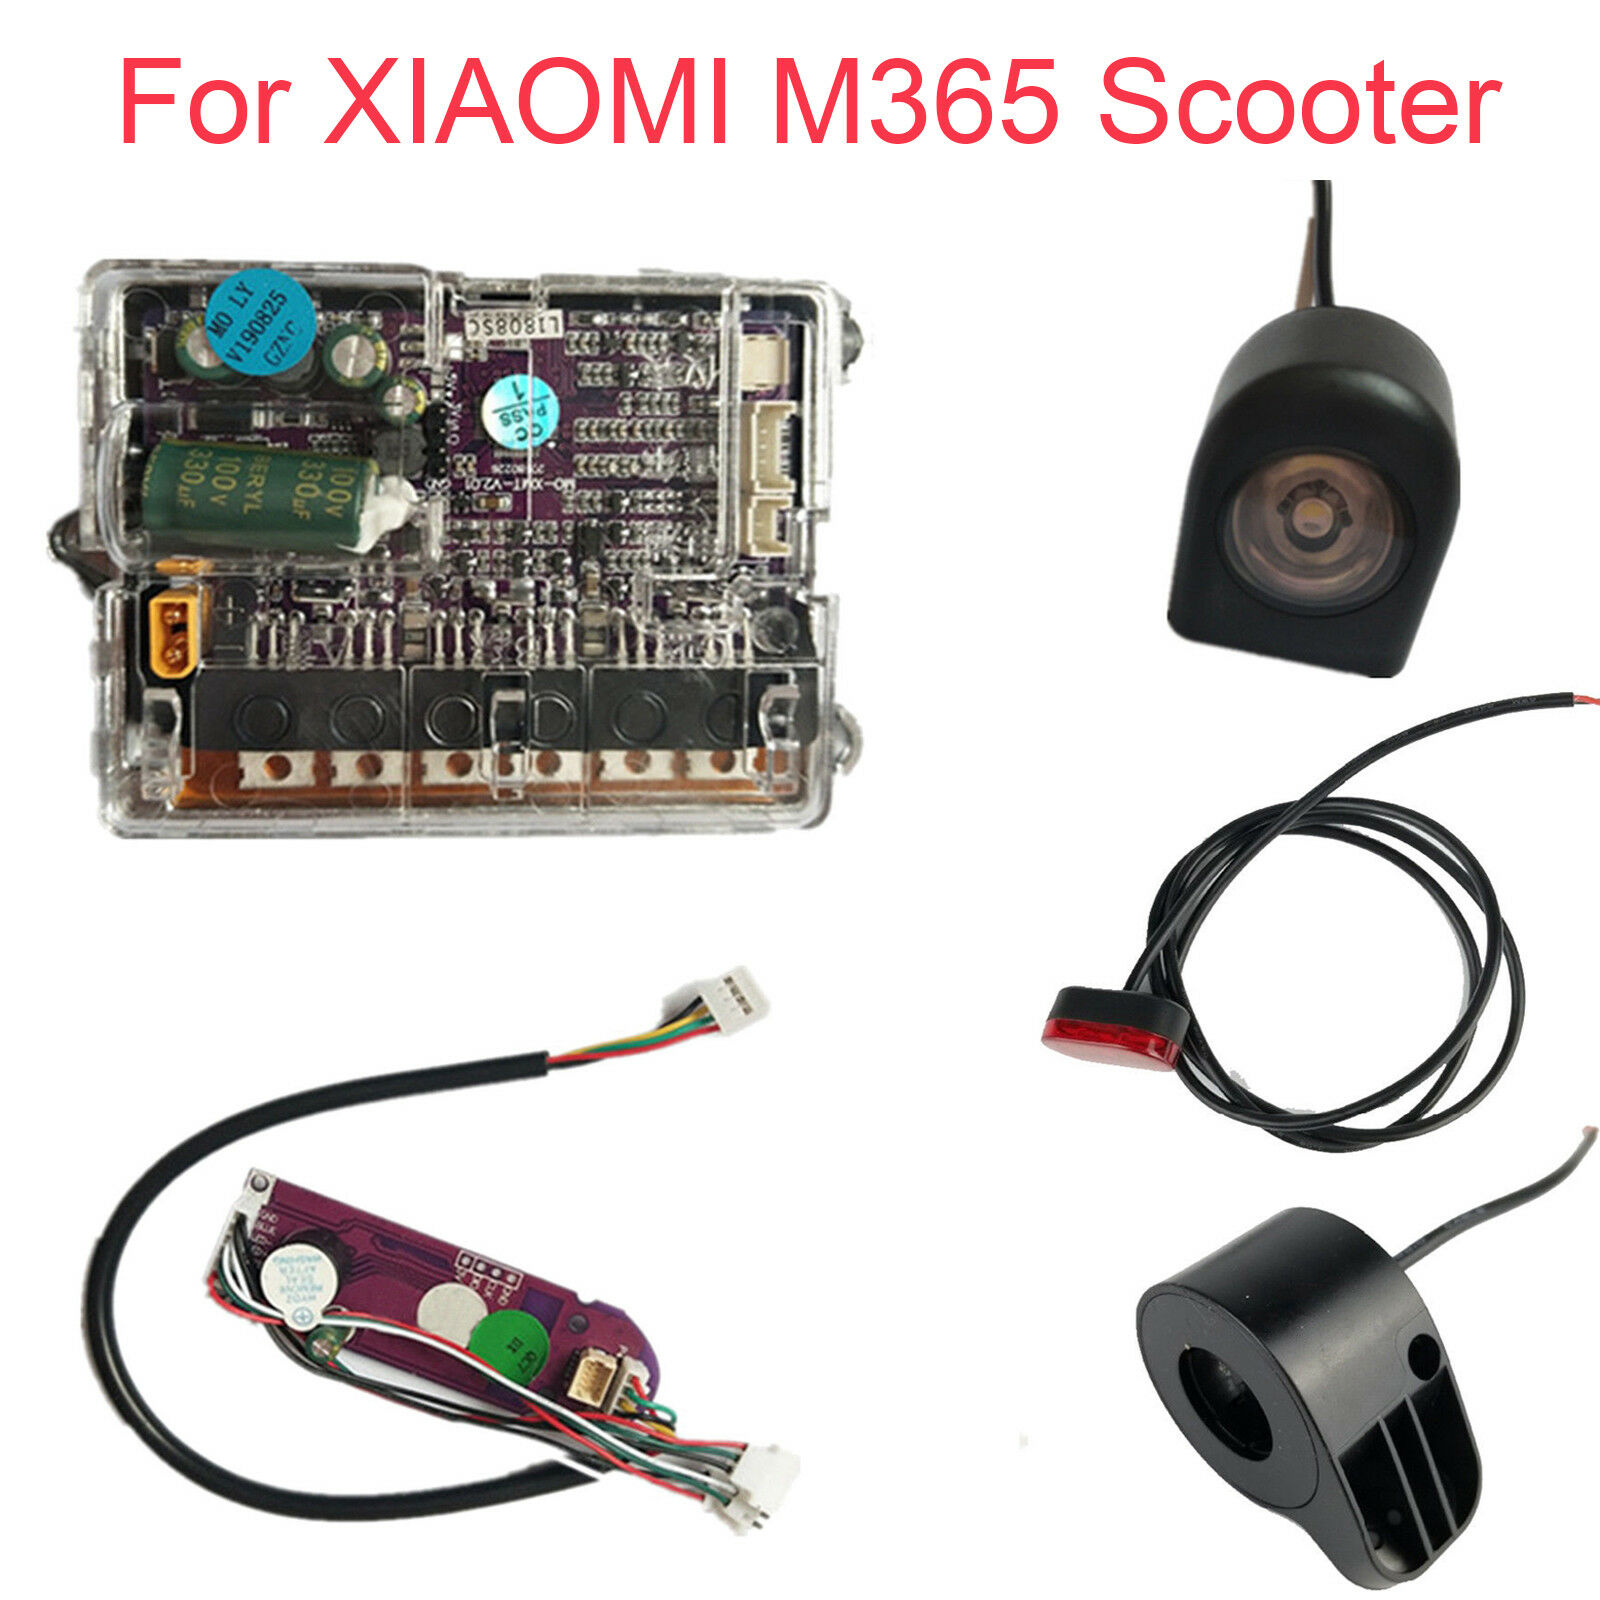 Motherboard +blueetooth board+ Headlights +Taillights + Thredtle For XIAOMI M365